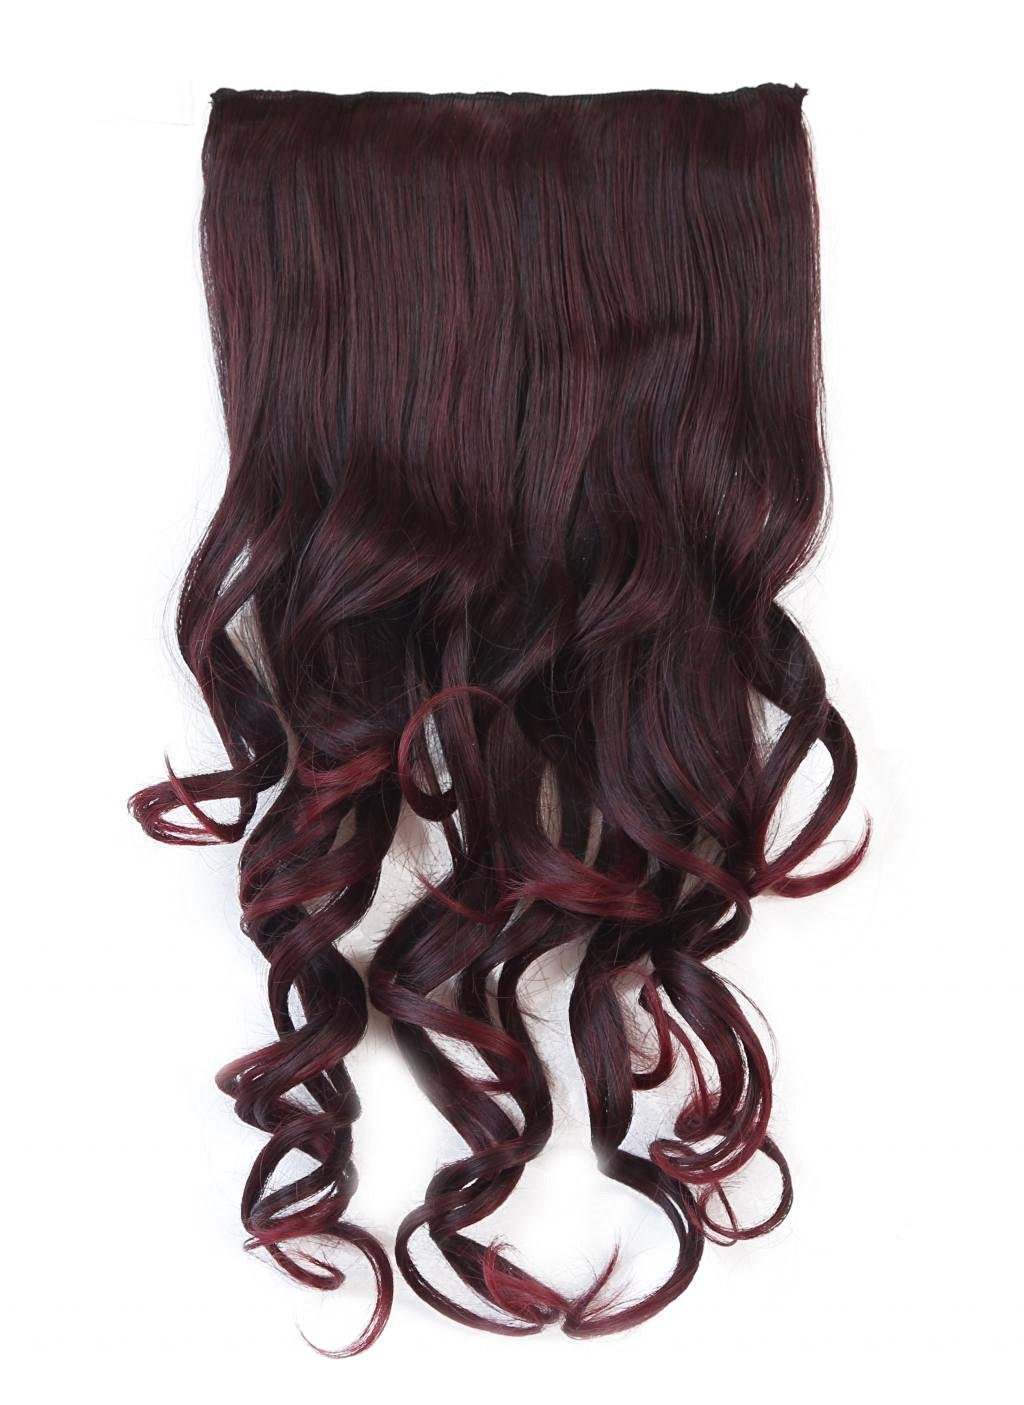 Cheap Red Hair Extension Clips Find Red Hair Extension Clips Deals